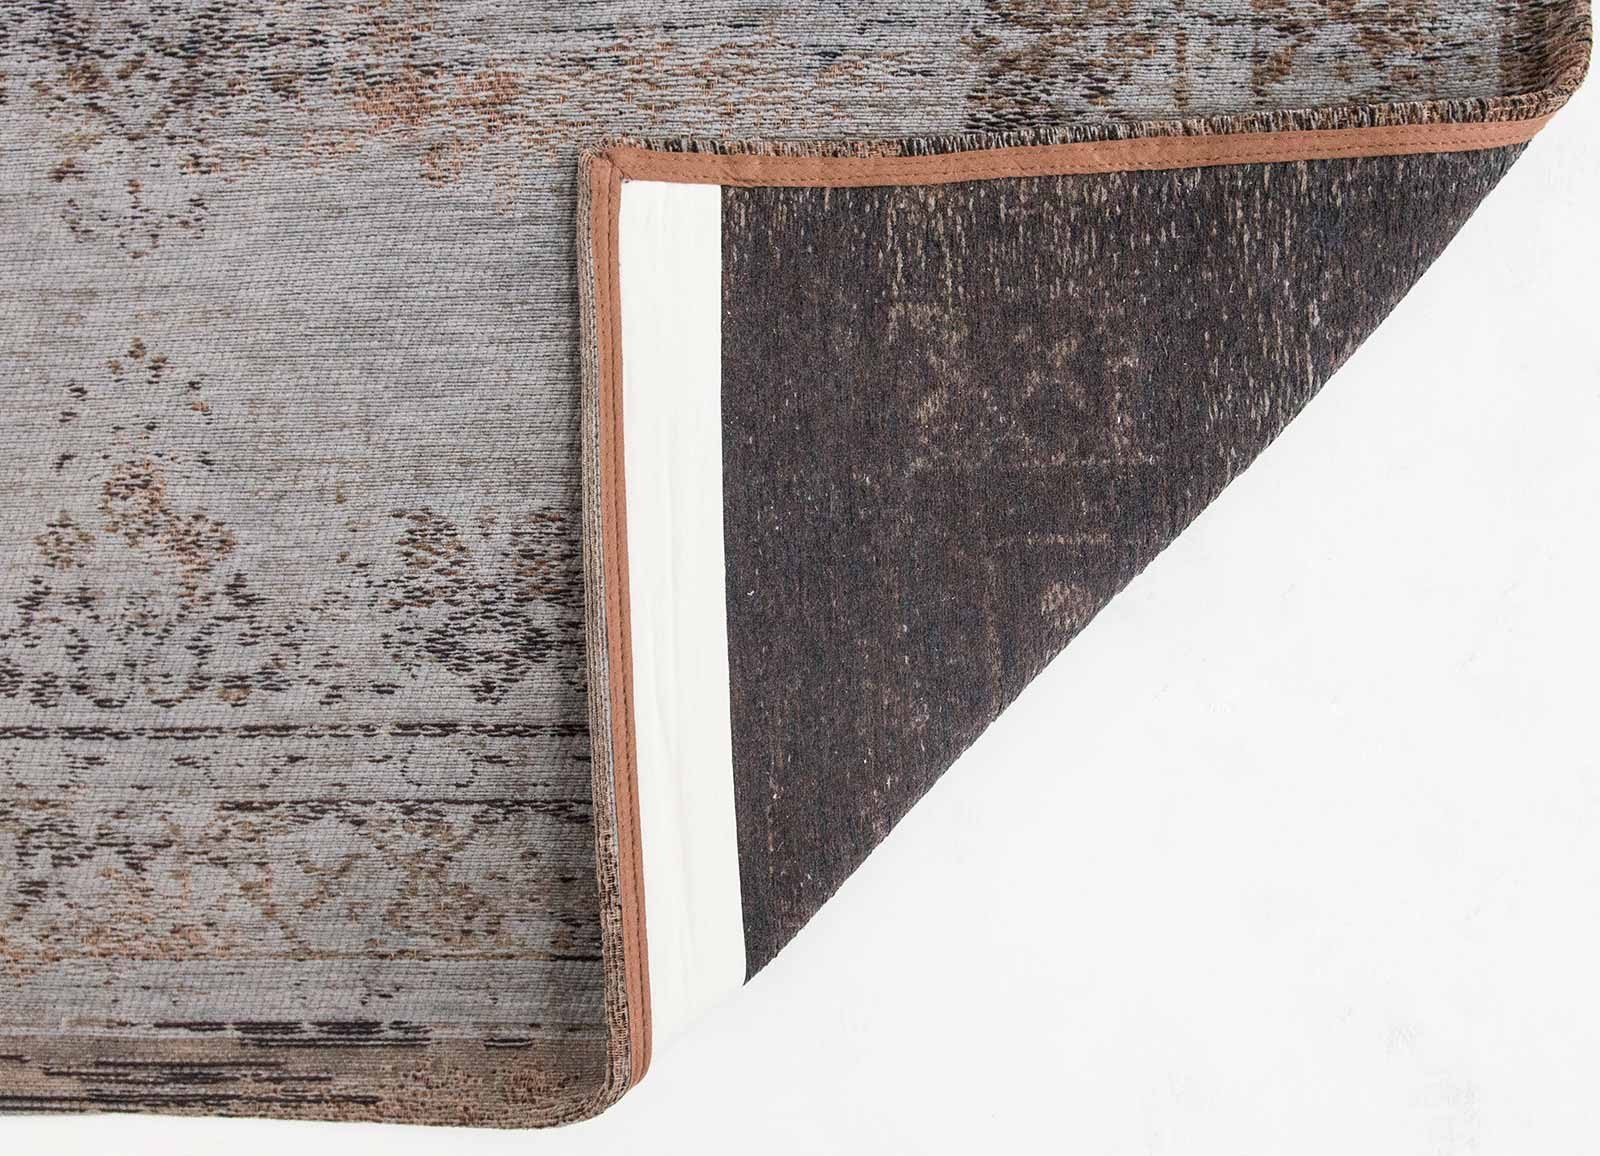 rugs Louis De Poortere LX8257 Fading World Medaillon Grey Ebony back